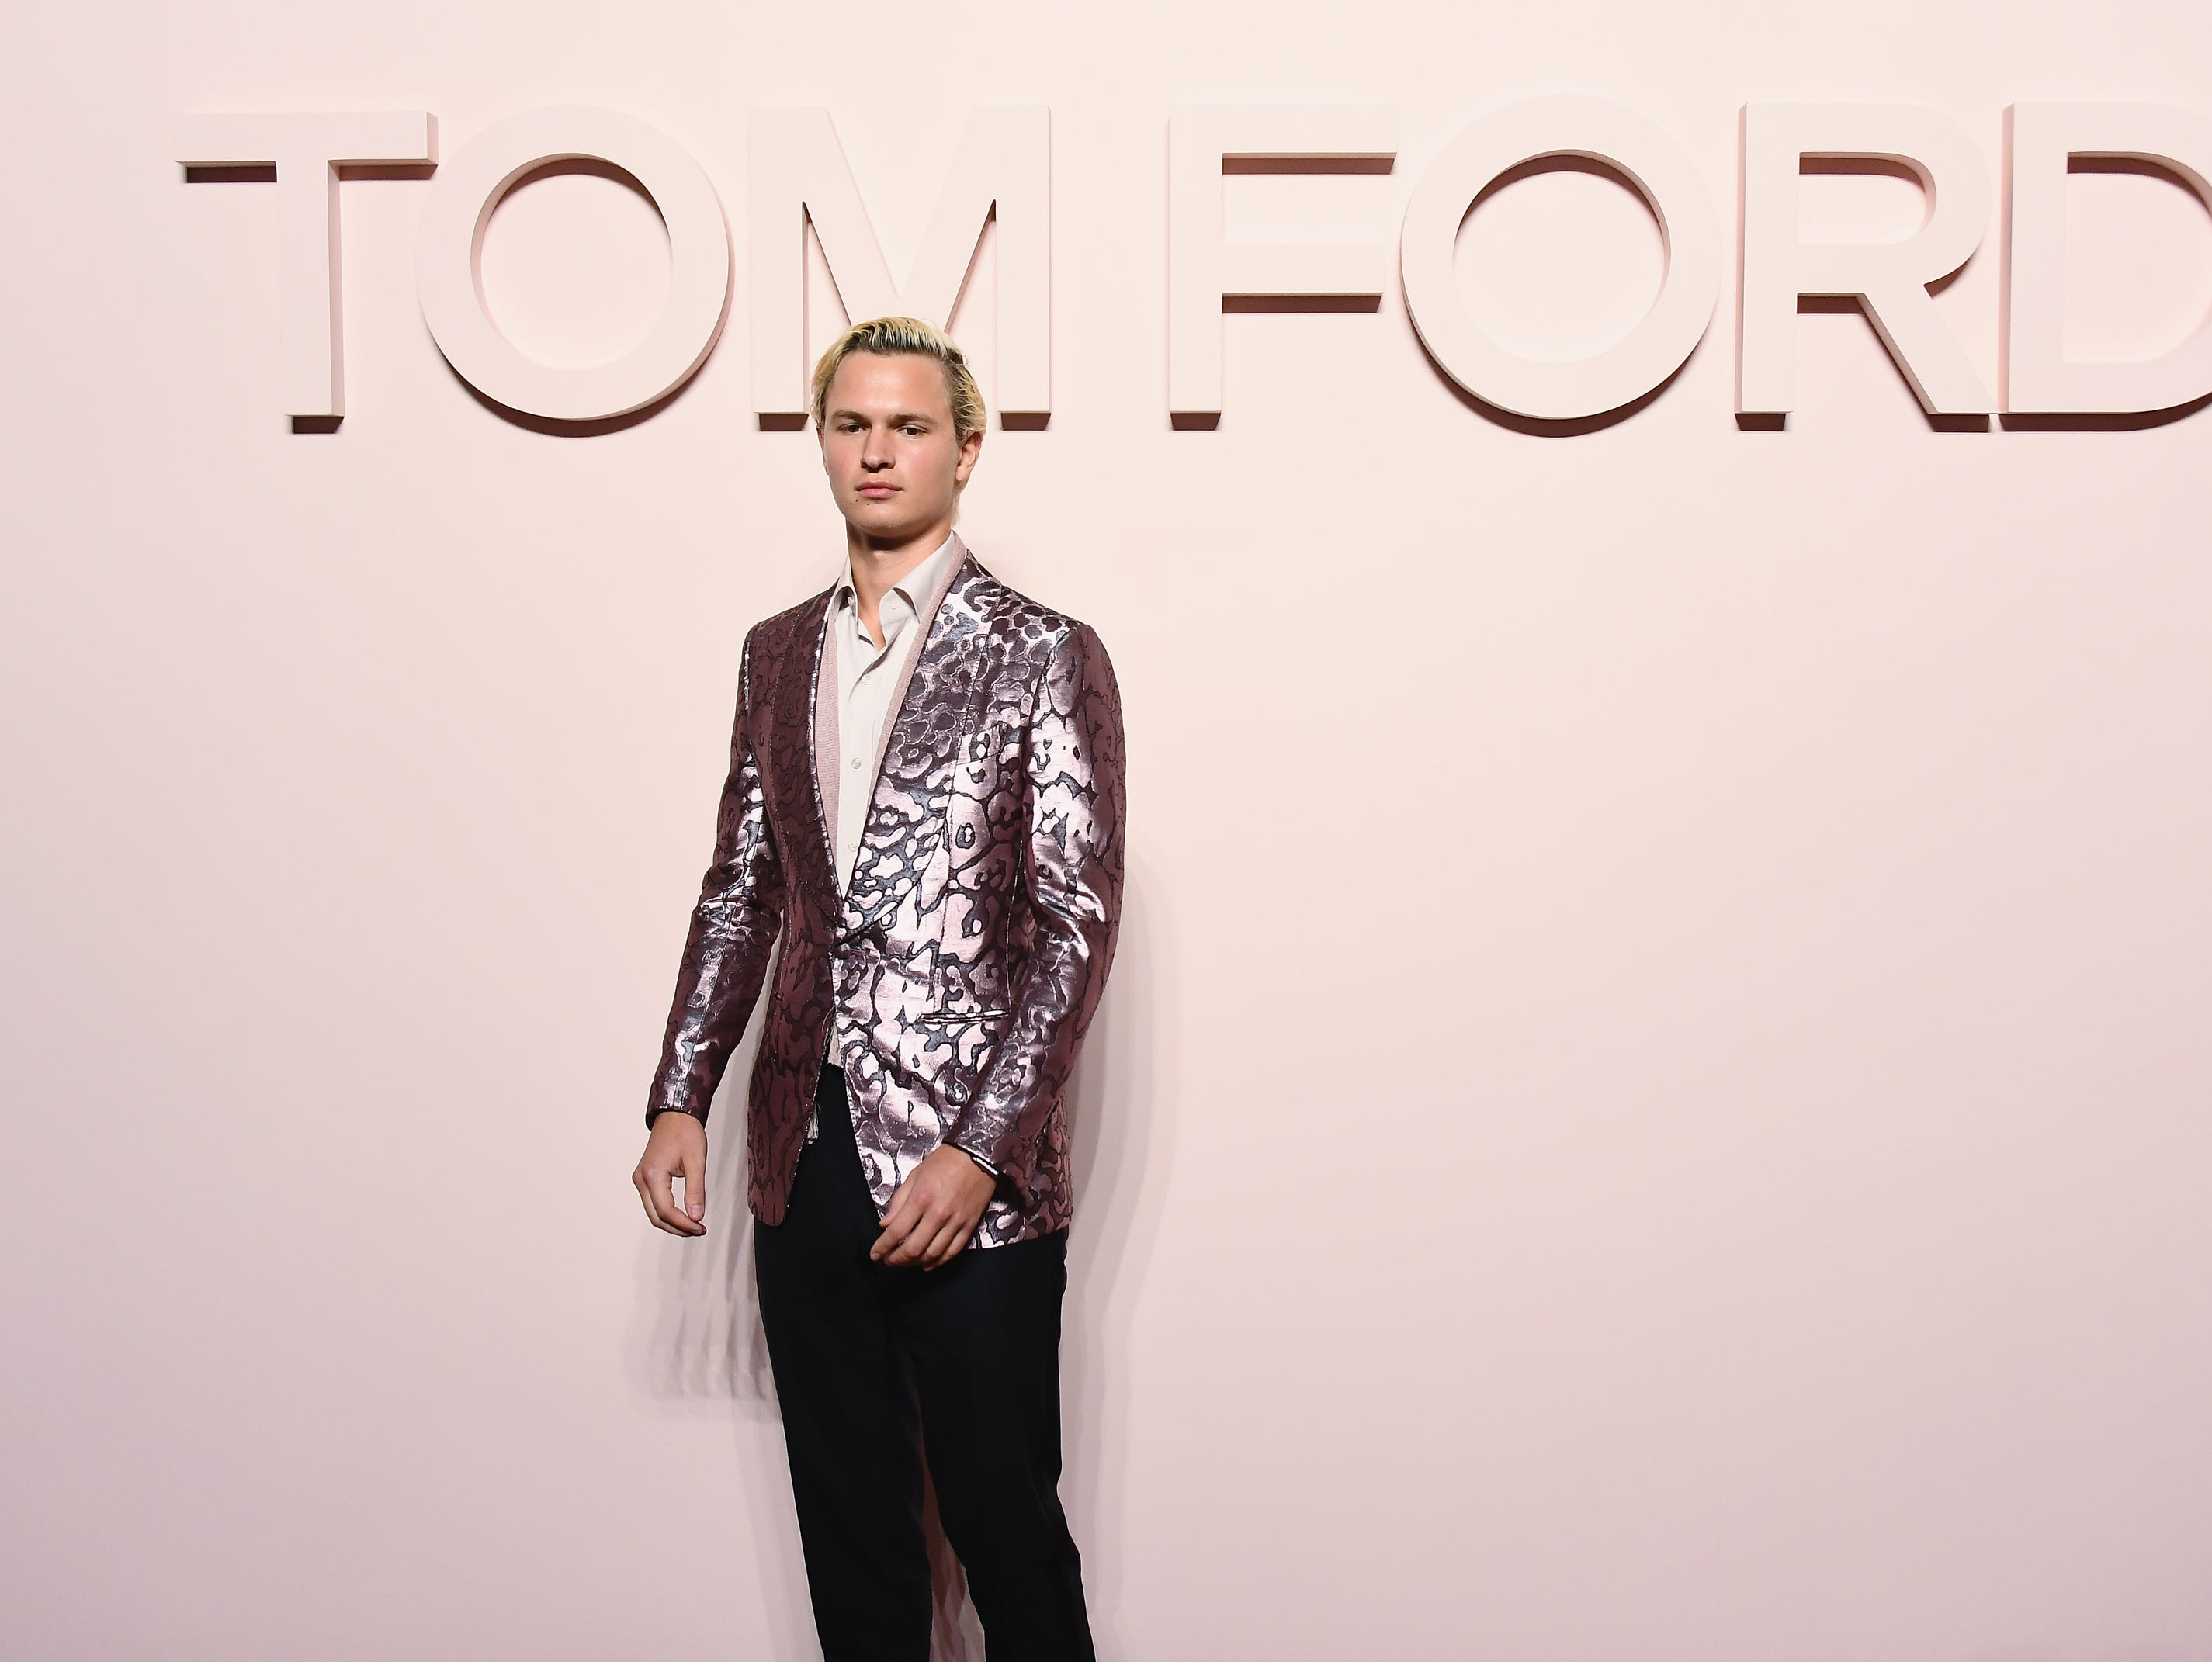 NEW YORK, NEW YORK - FEBRUARY 06: Ansel Elgort attends the Tom Ford FW 2019 - Arrivals - New York Fashion Week: The Shows on February 06, 2019 in New York City. (Photo by Nicholas Hunt/Getty Images) ORG XMIT: 775293212 ORIG FILE ID: 1127939799